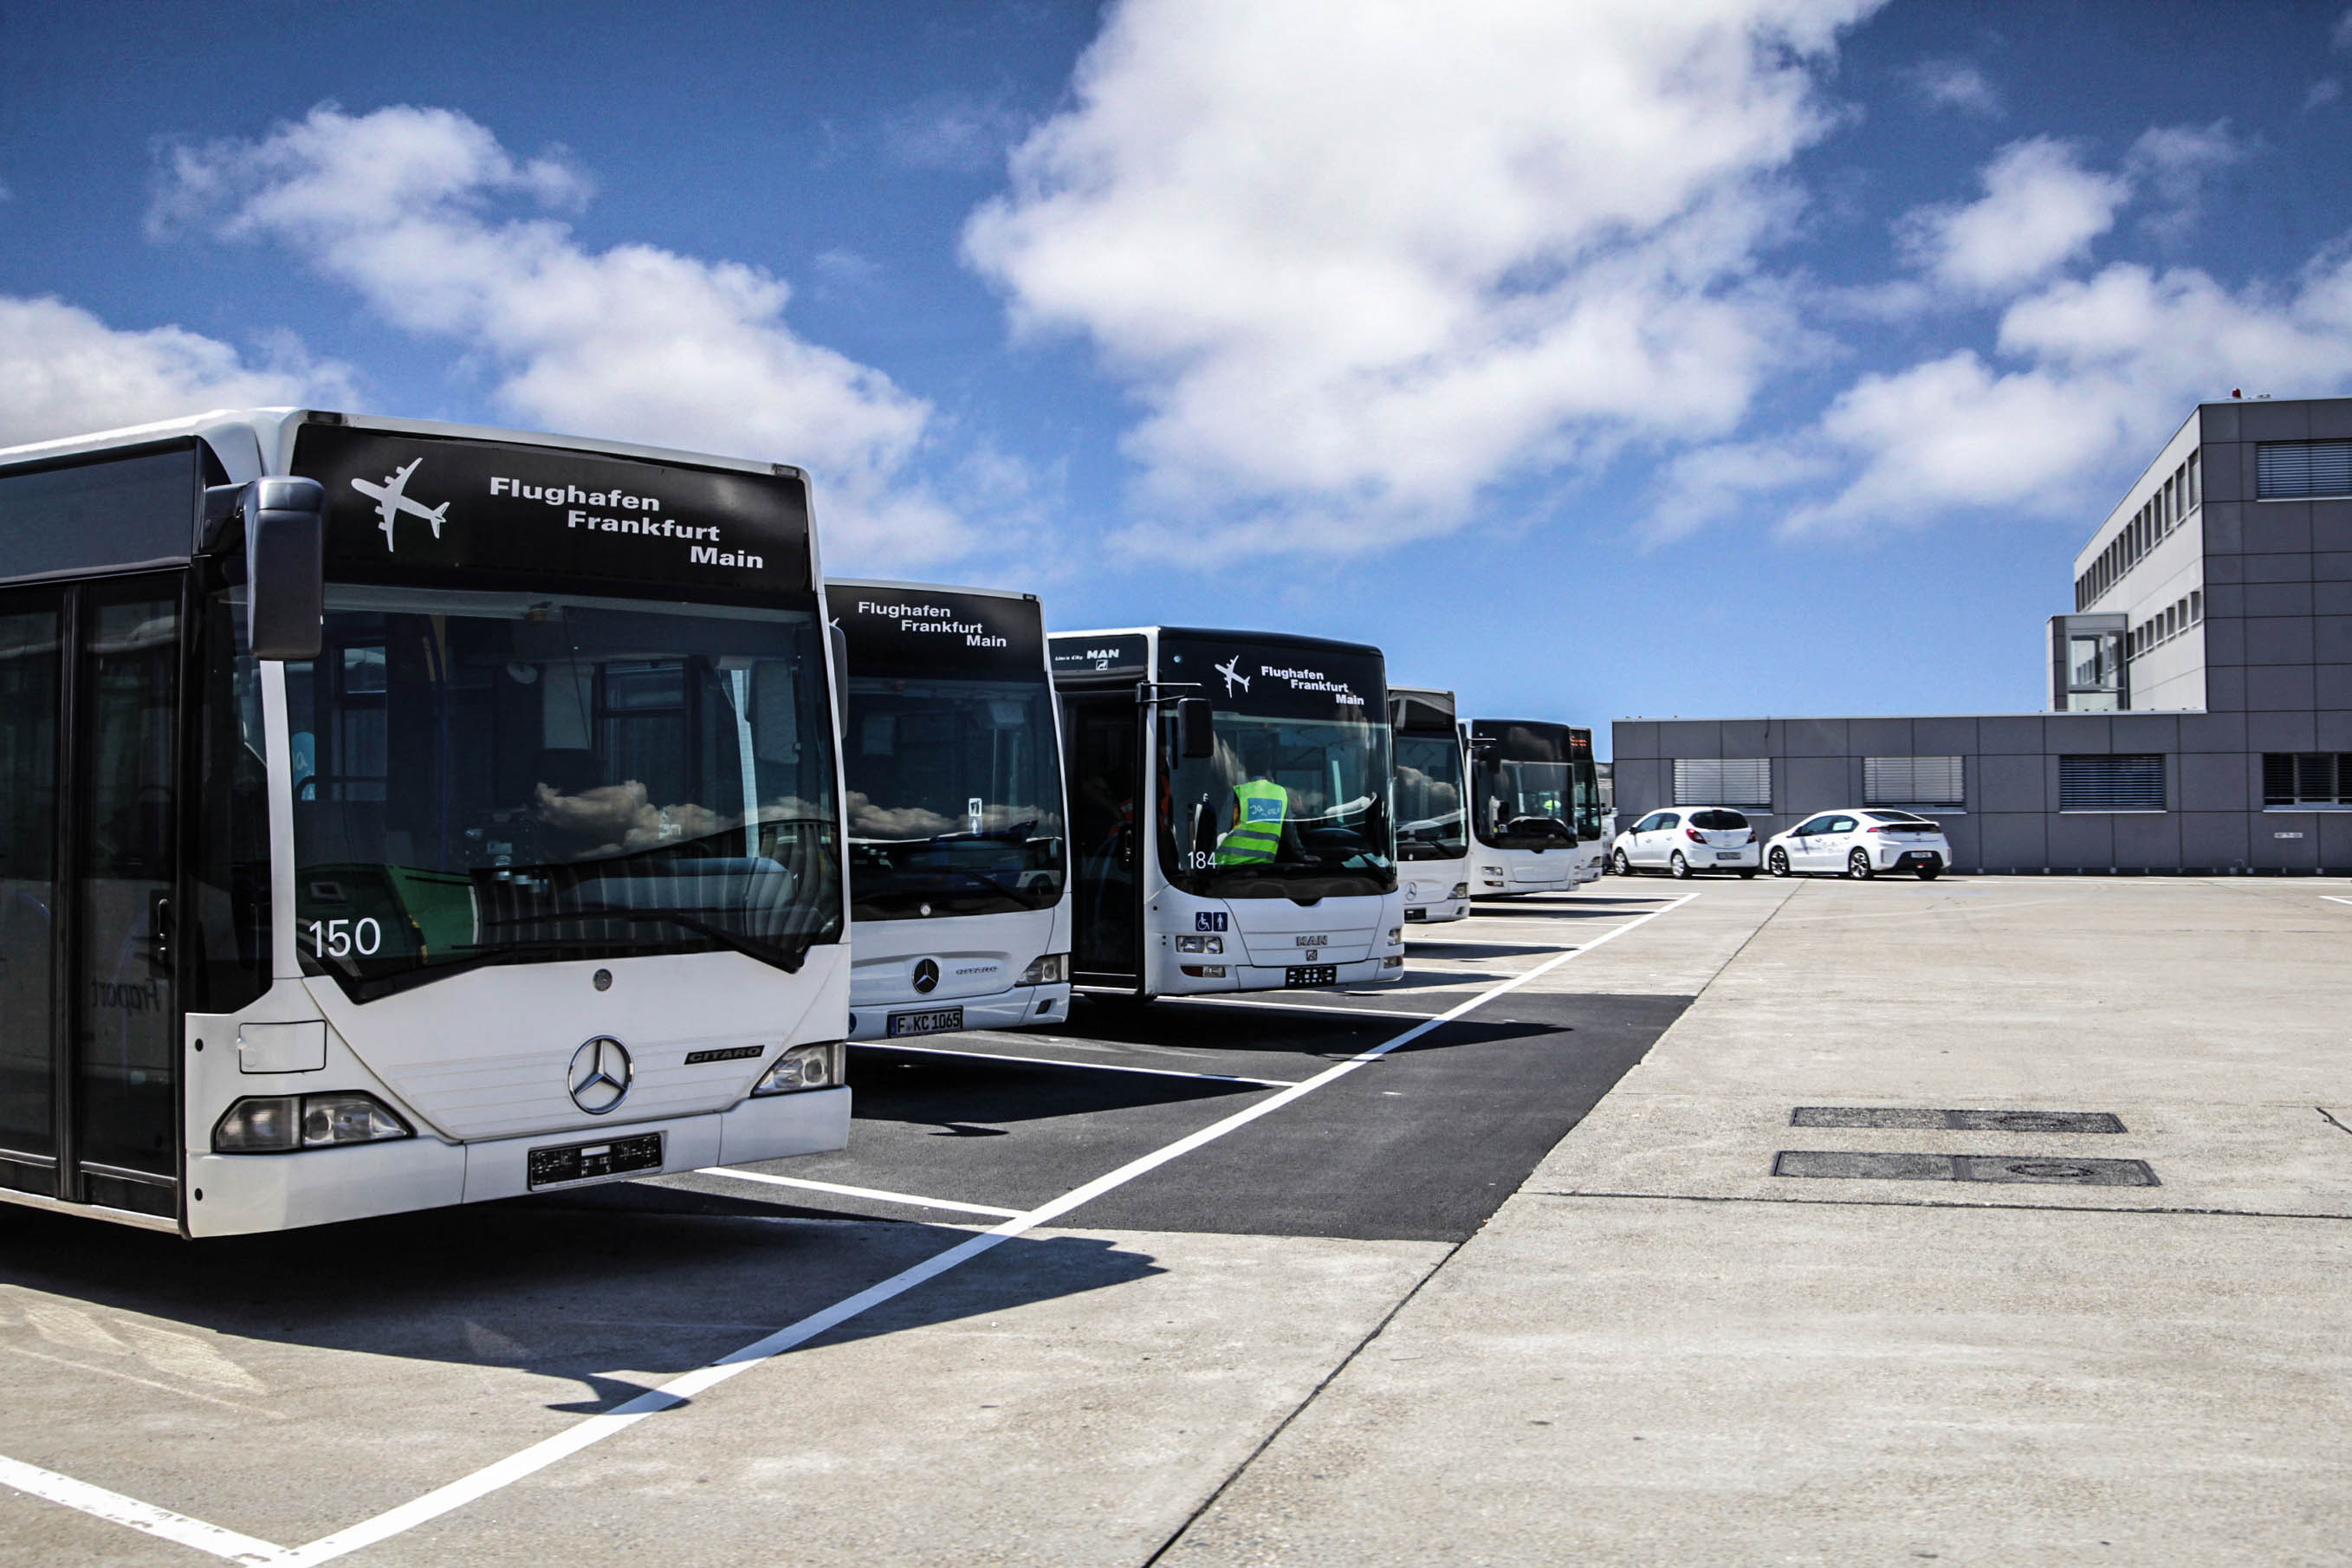 Frankfurt, Germany - August 20, 2015: A row of Mercedes Benz shuttle buses is waiting to be asked to take flight passengers from concorses to external airliner parking positions on the airfield.